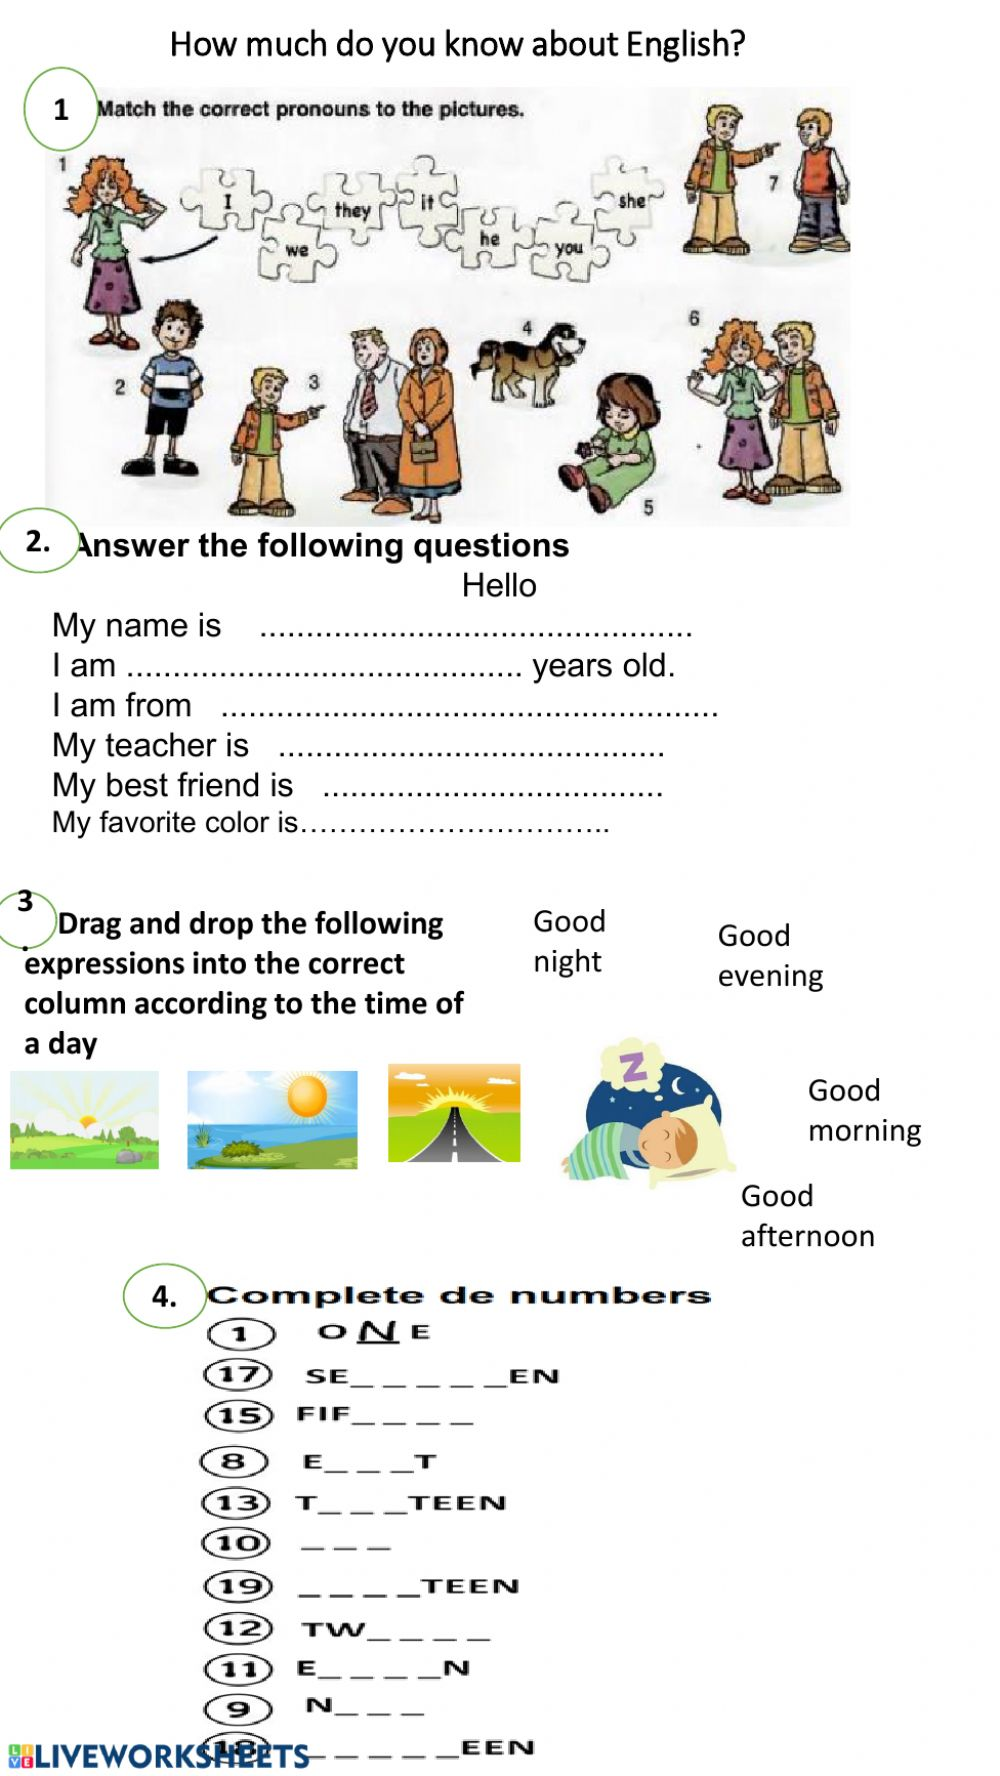 - How Much Do You Know About English? - Interactive Worksheet